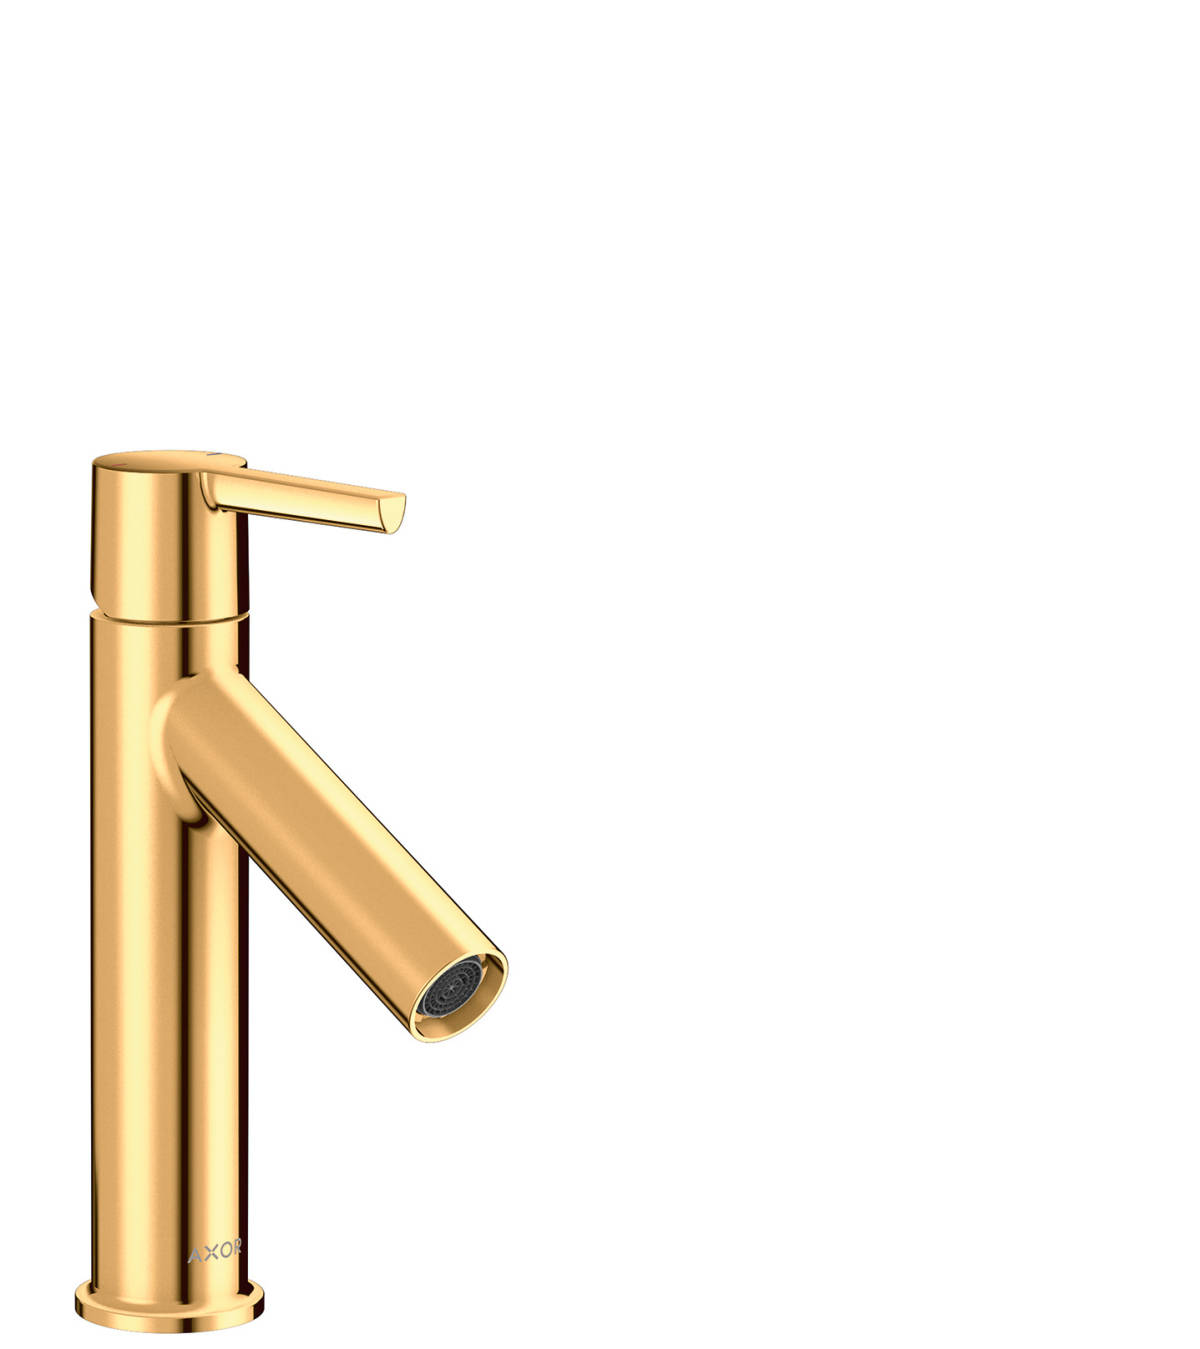 Single lever basin mixer 100 with lever handle and waste set, Polished Gold Optic, 10003990